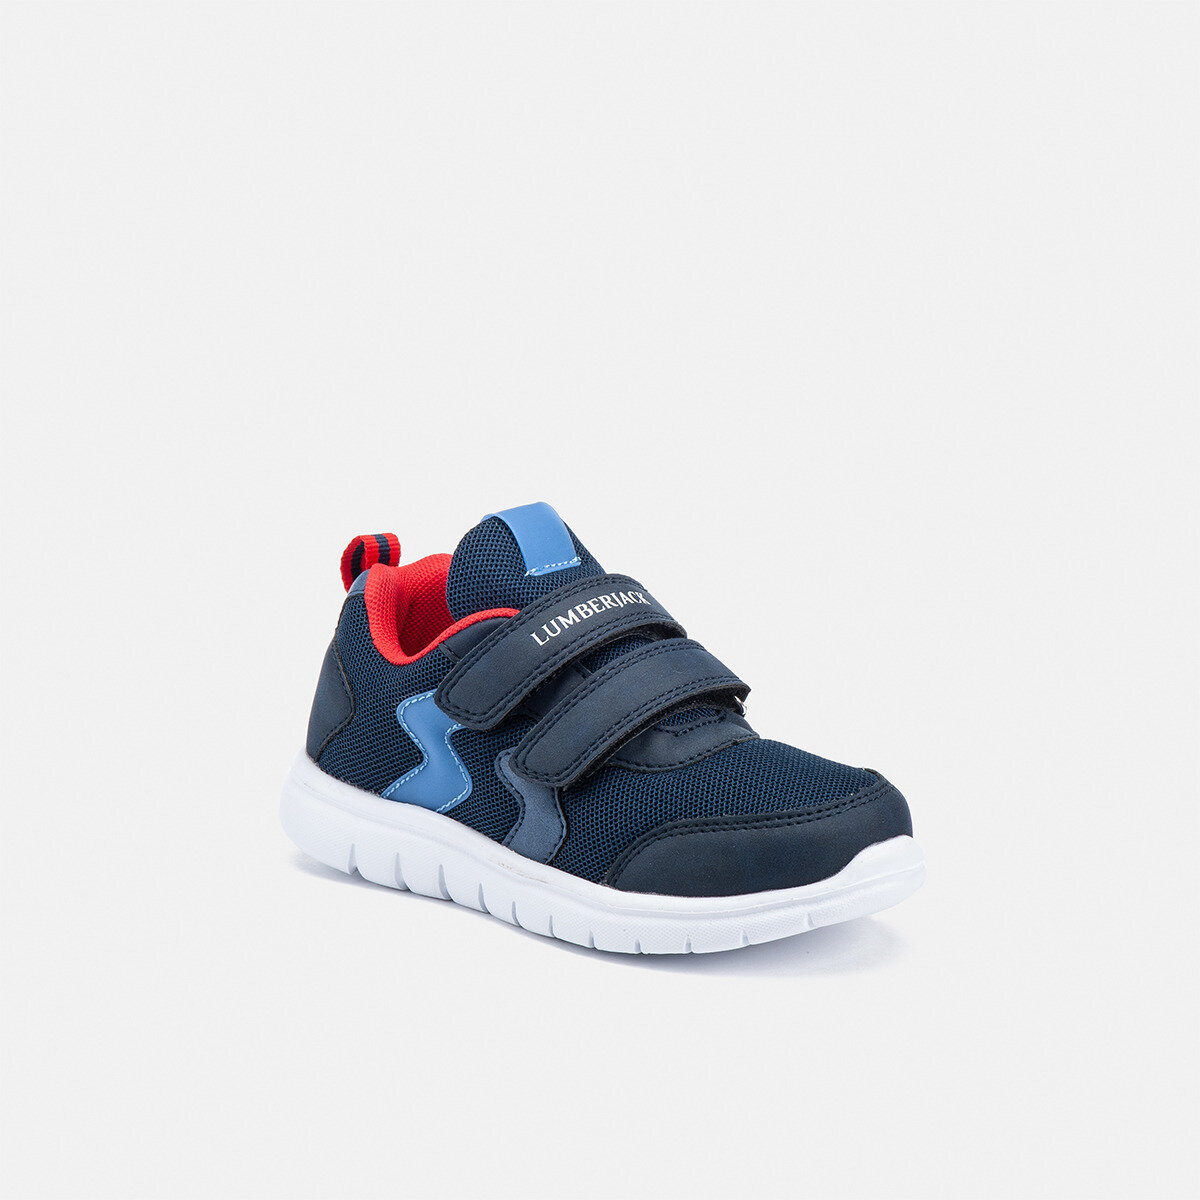 CRASH Sneakers Bambino